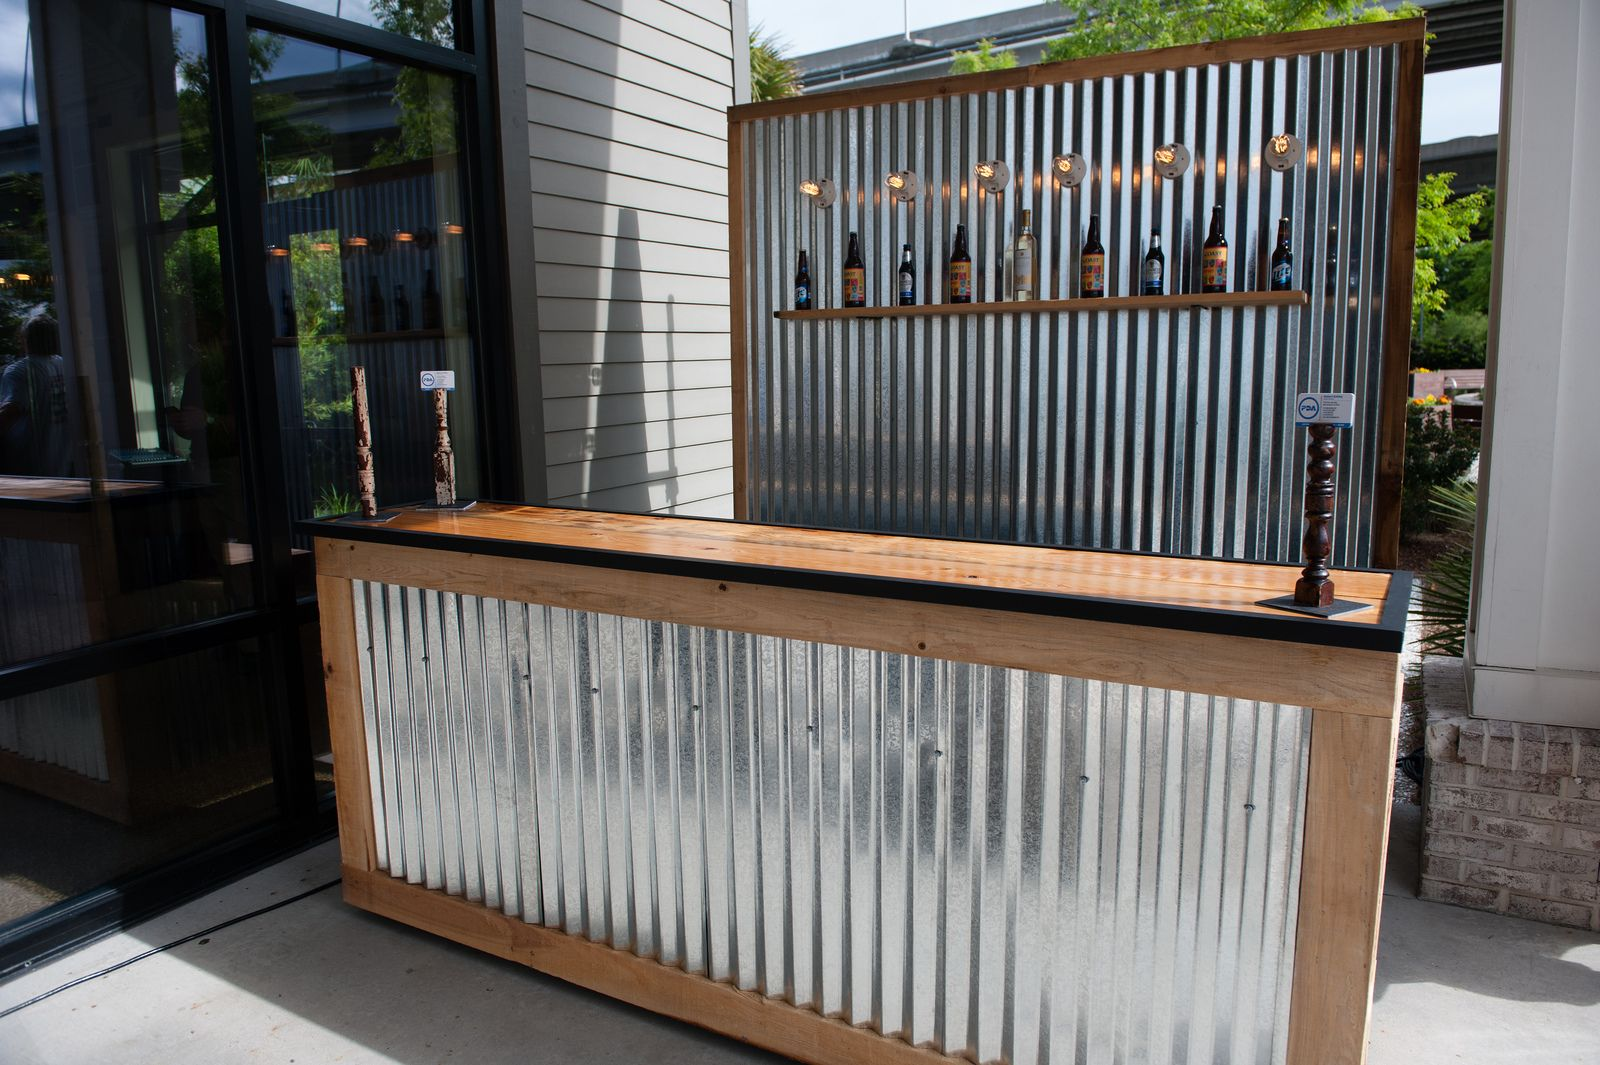 Corrugated Metal Bar (Large) and Corrugated Metal Backdrop with Shelf